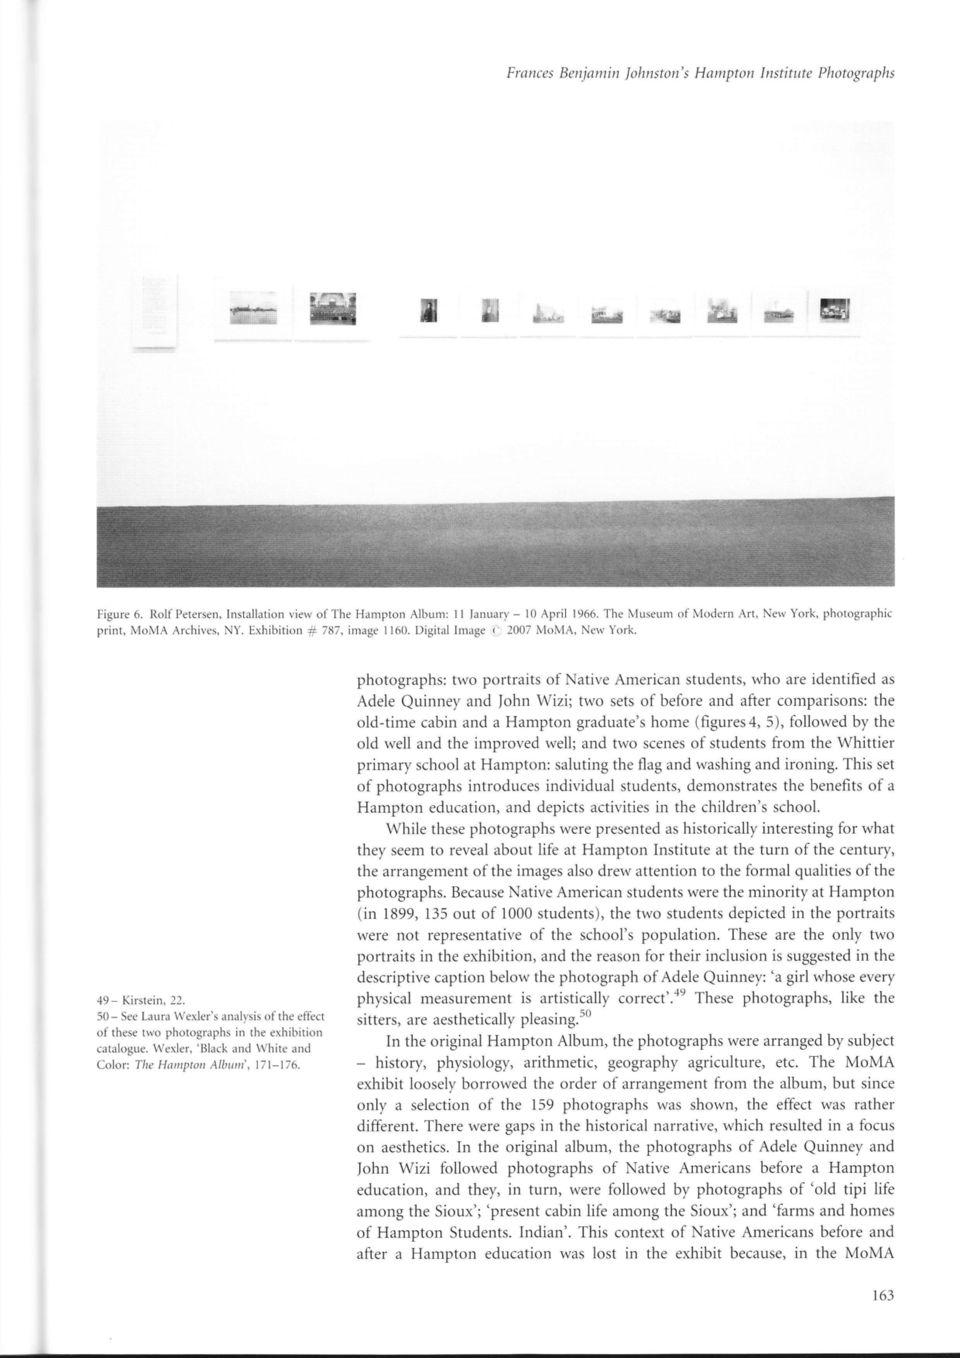 50 - See Laura \{exler's analysis of the effect of these trvo photographs in the exhibition catalogue. Werler, 'Black ancl \{hite and Color: The Hompton Albuni, 17I-176.